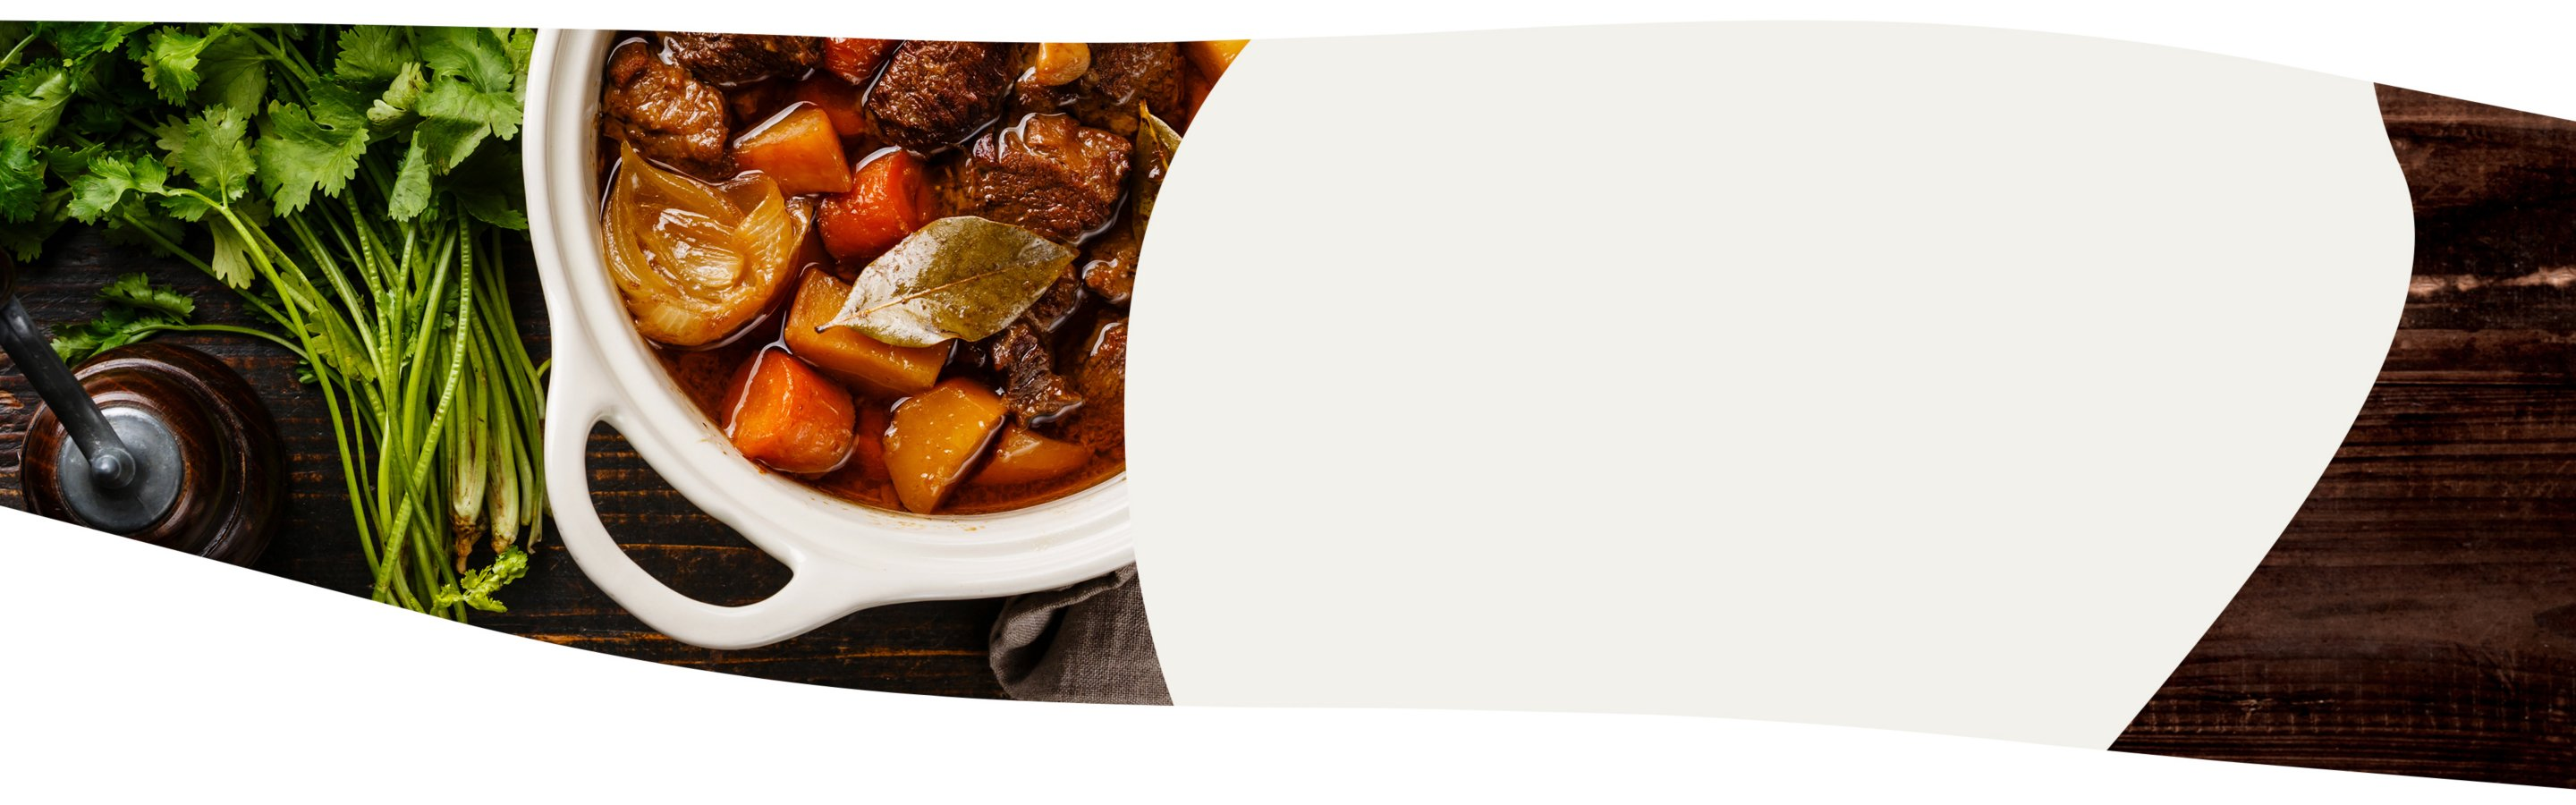 a banner of a slow cooker with food